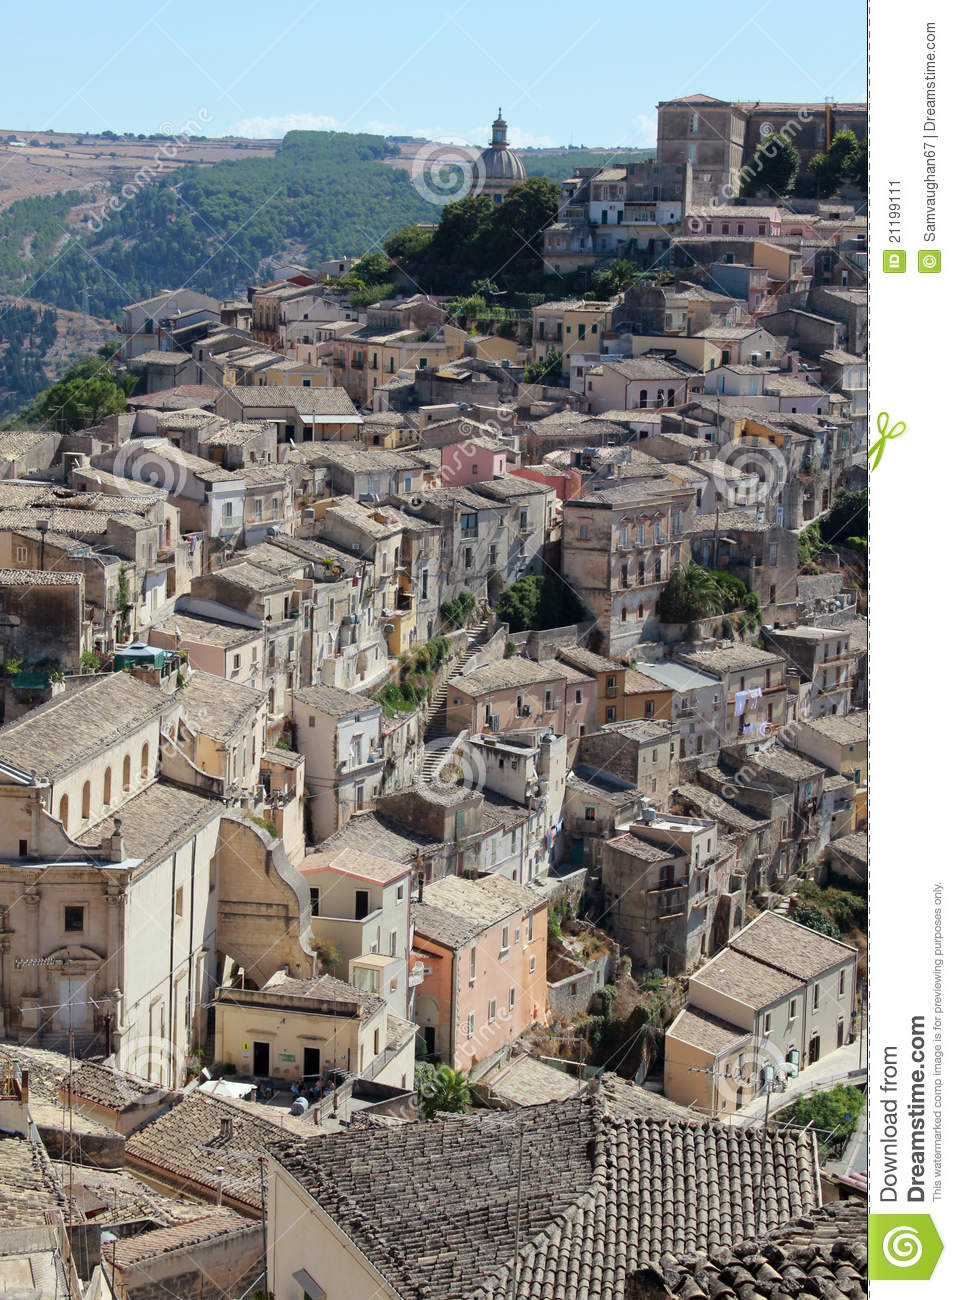 Ragusa Ibla s roof tops viewed from above